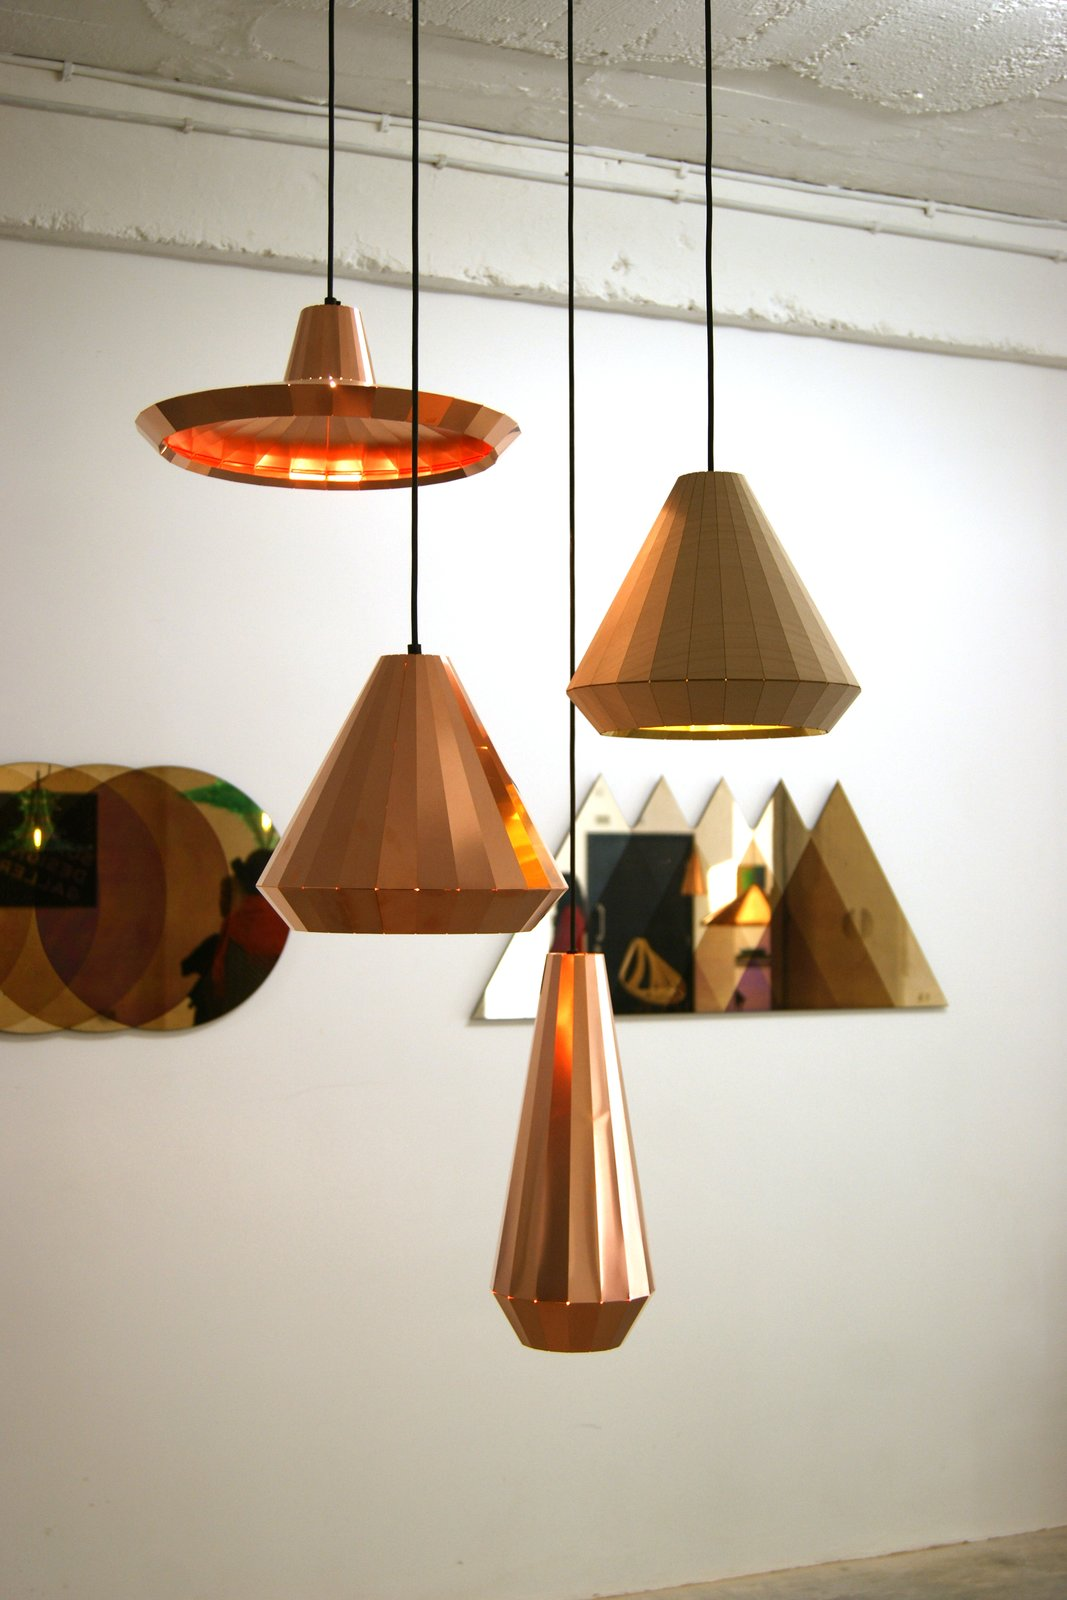 At the TENT London exhibition in east London, Dutch Designer David Derksen exhibited a collection of multi-faceted Copper Lights made from etched and folded copper sheets.  Key Trends from 2013 London Design Festival by Ali Morris